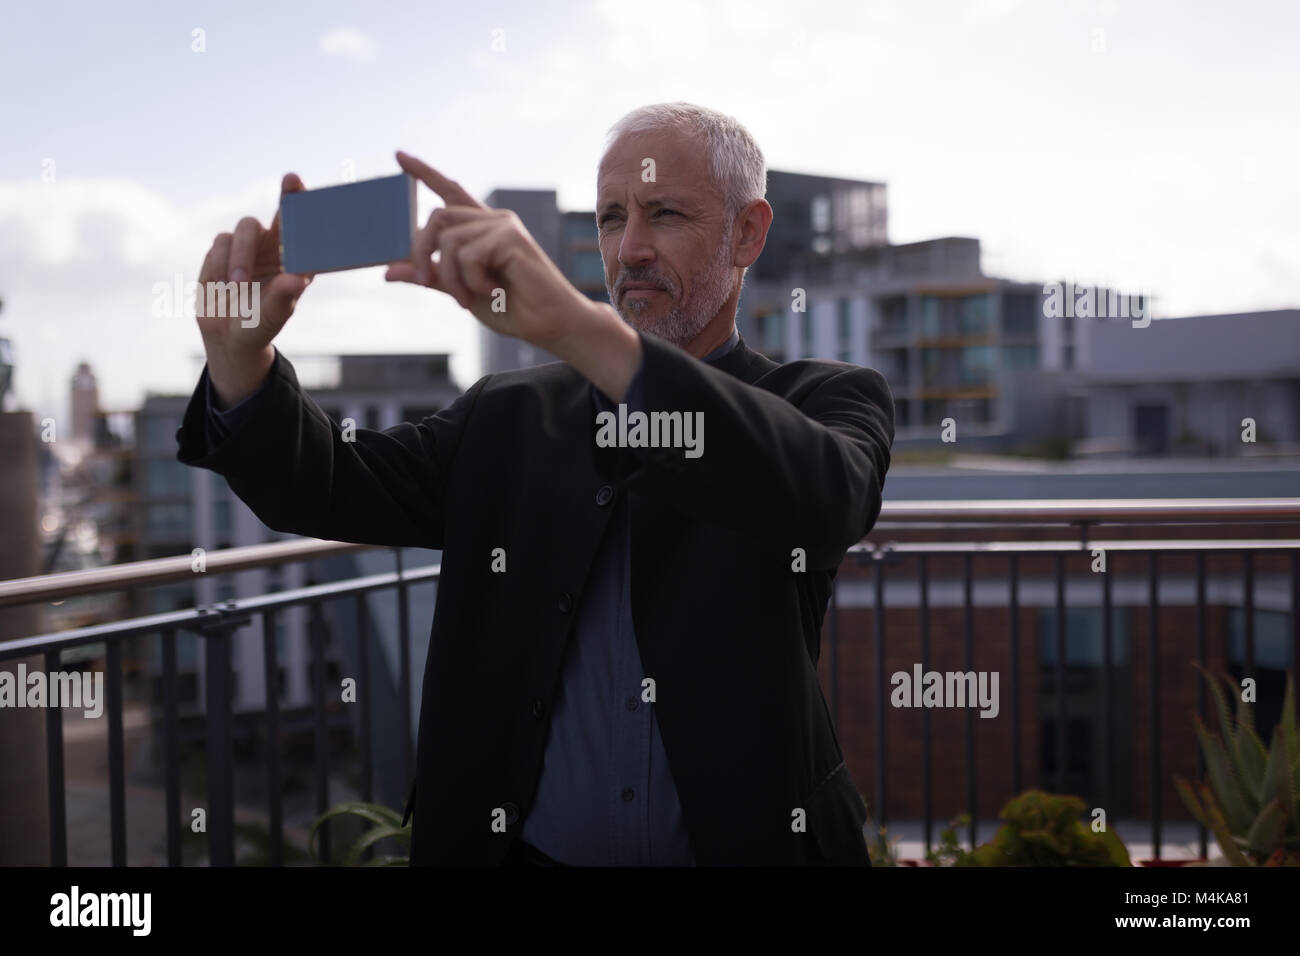 Businessman taking picture on mobile phone - Stock Image